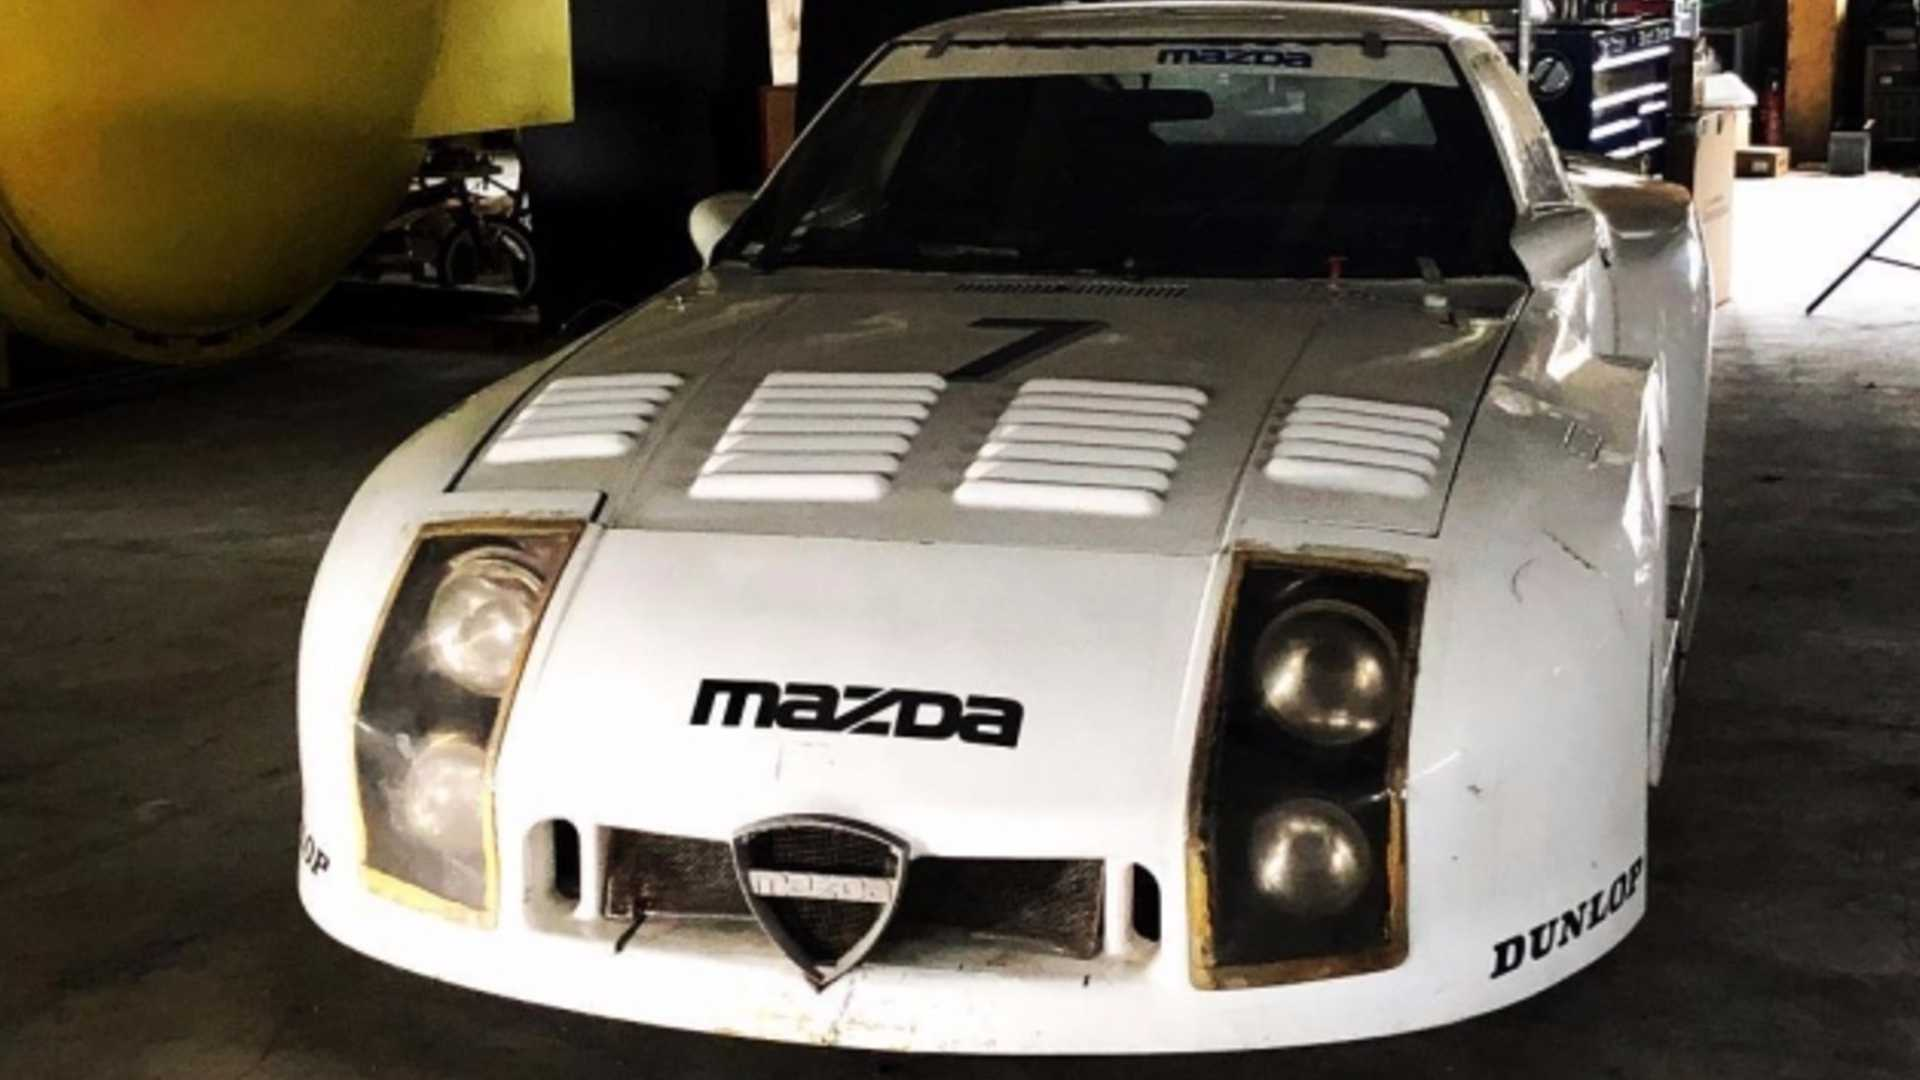 Missing 1982 Mazda Le Mans 254i Racer Has Been Found | Motorious